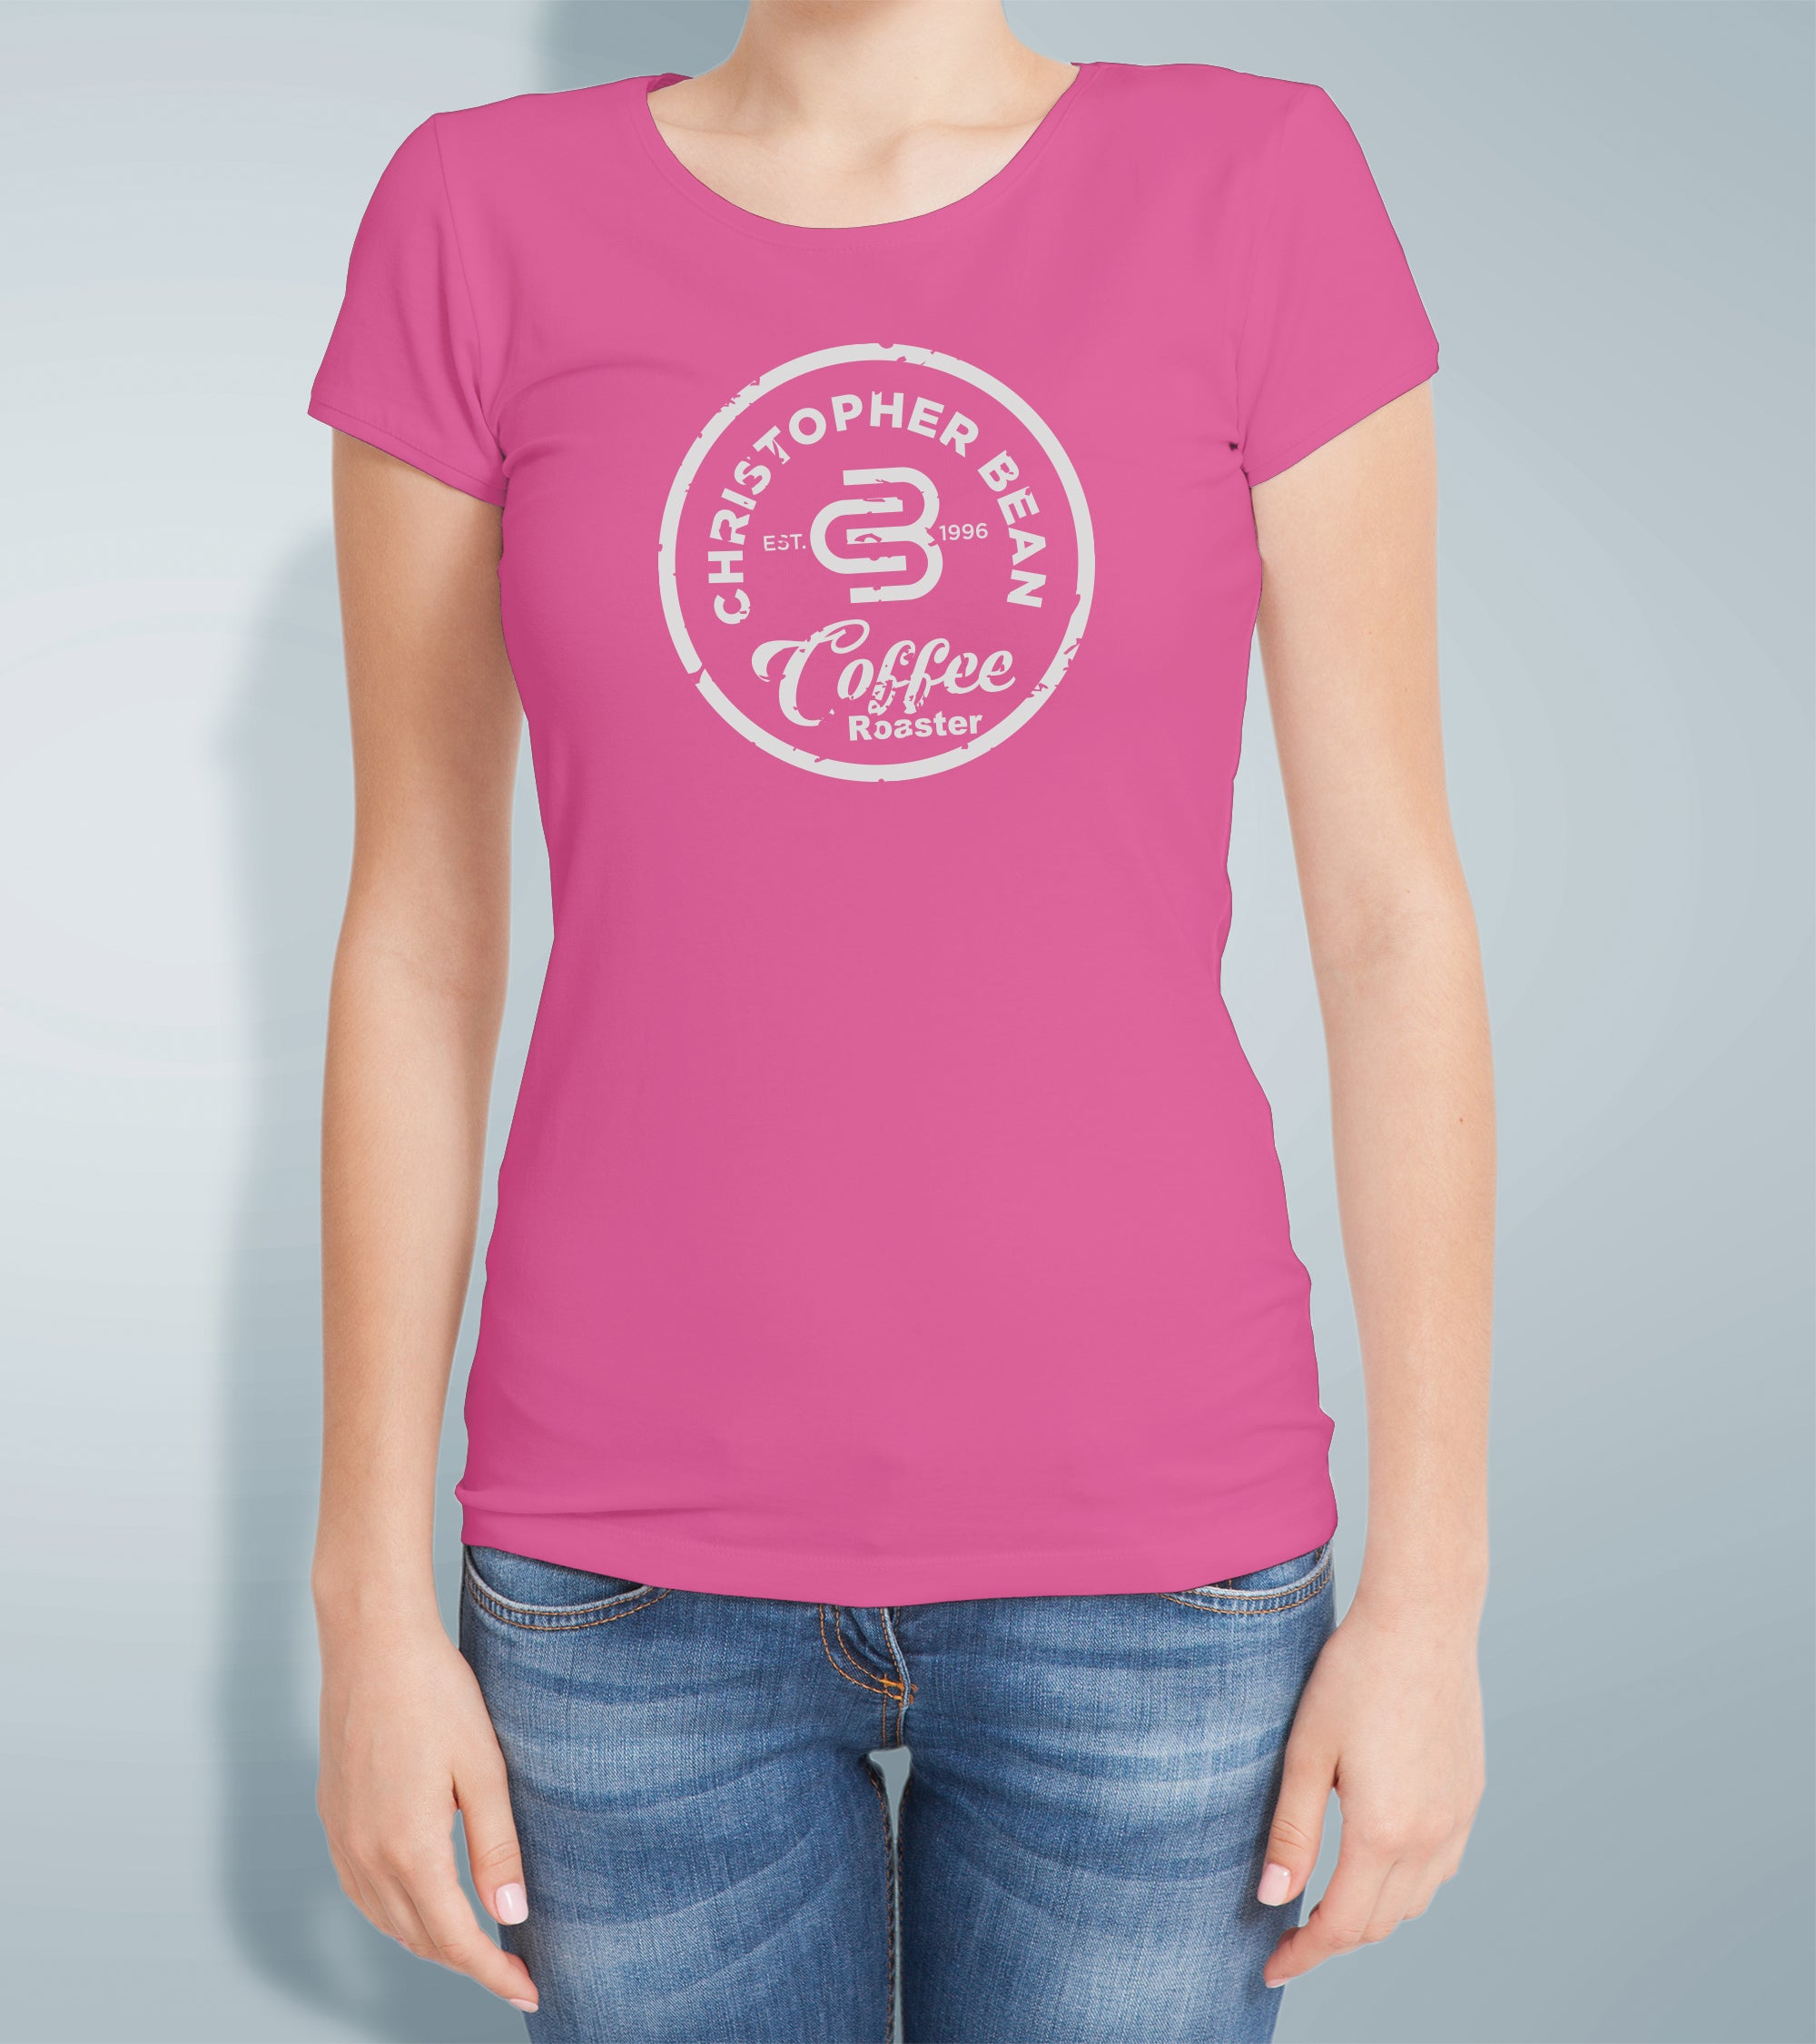 Ladies Since 1996 Coffee Roaster T Shirt